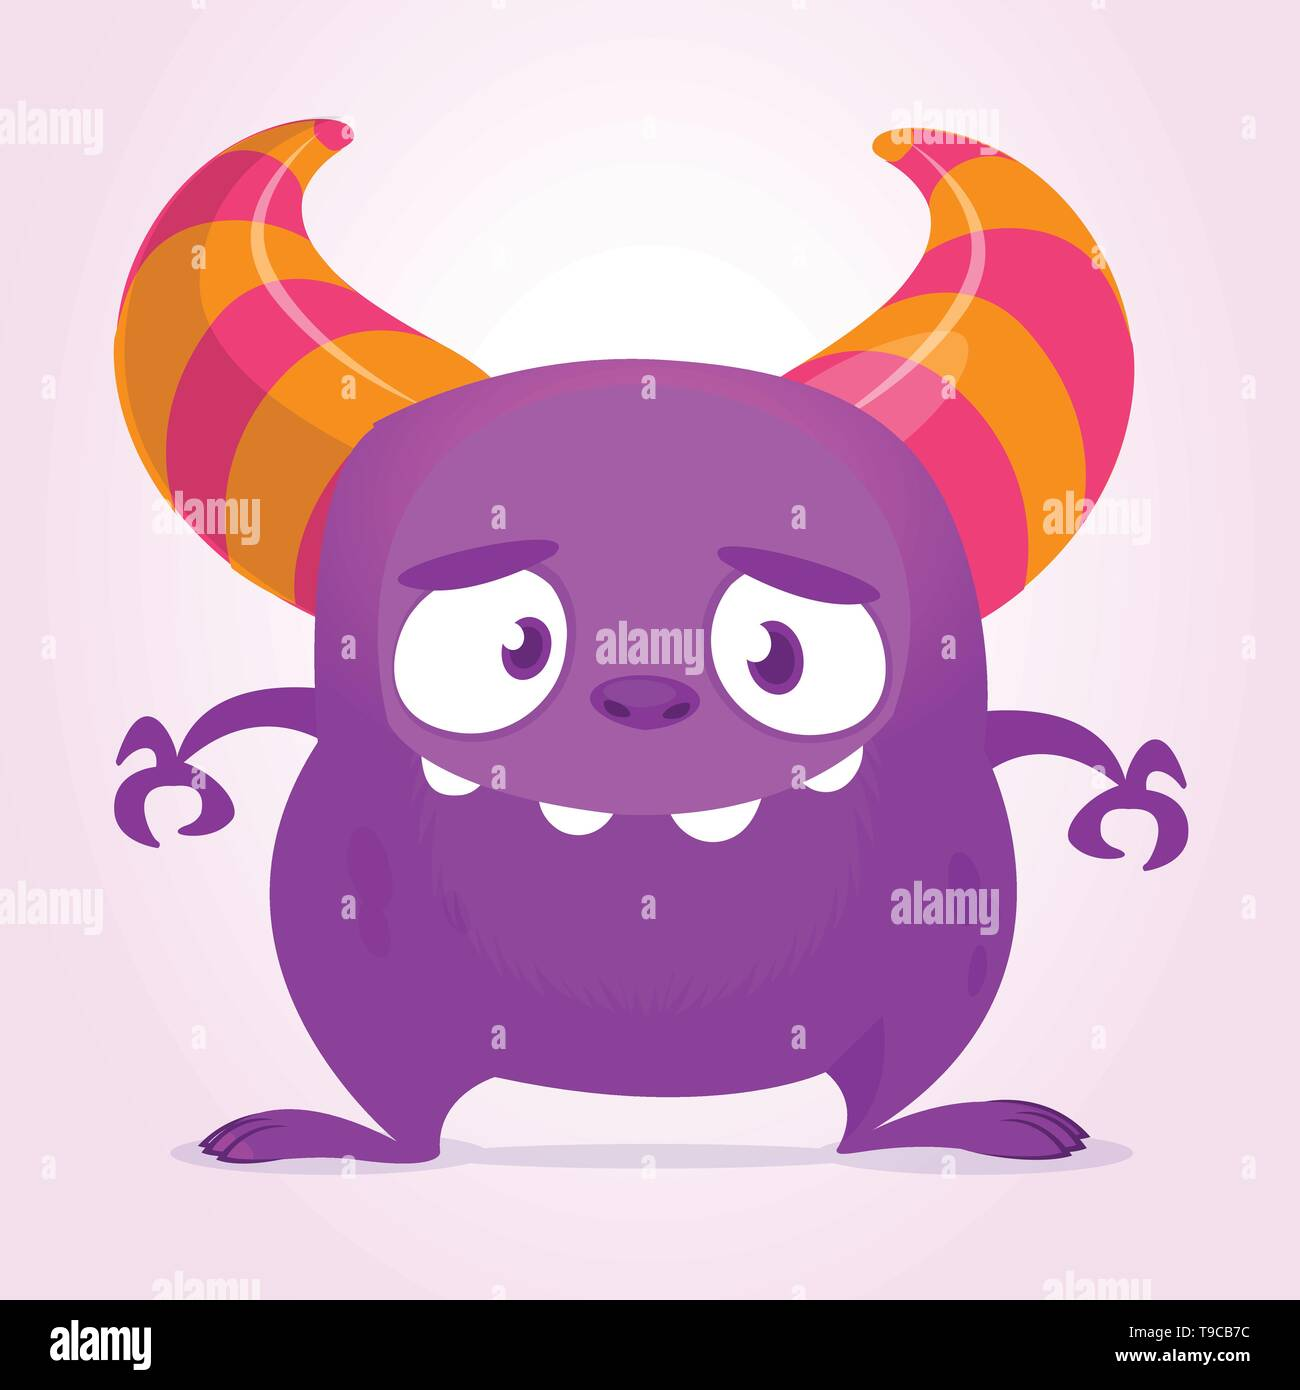 Funny cartoon monster with big mouth. Vector purple monster illustration. Halloween design - Stock Image